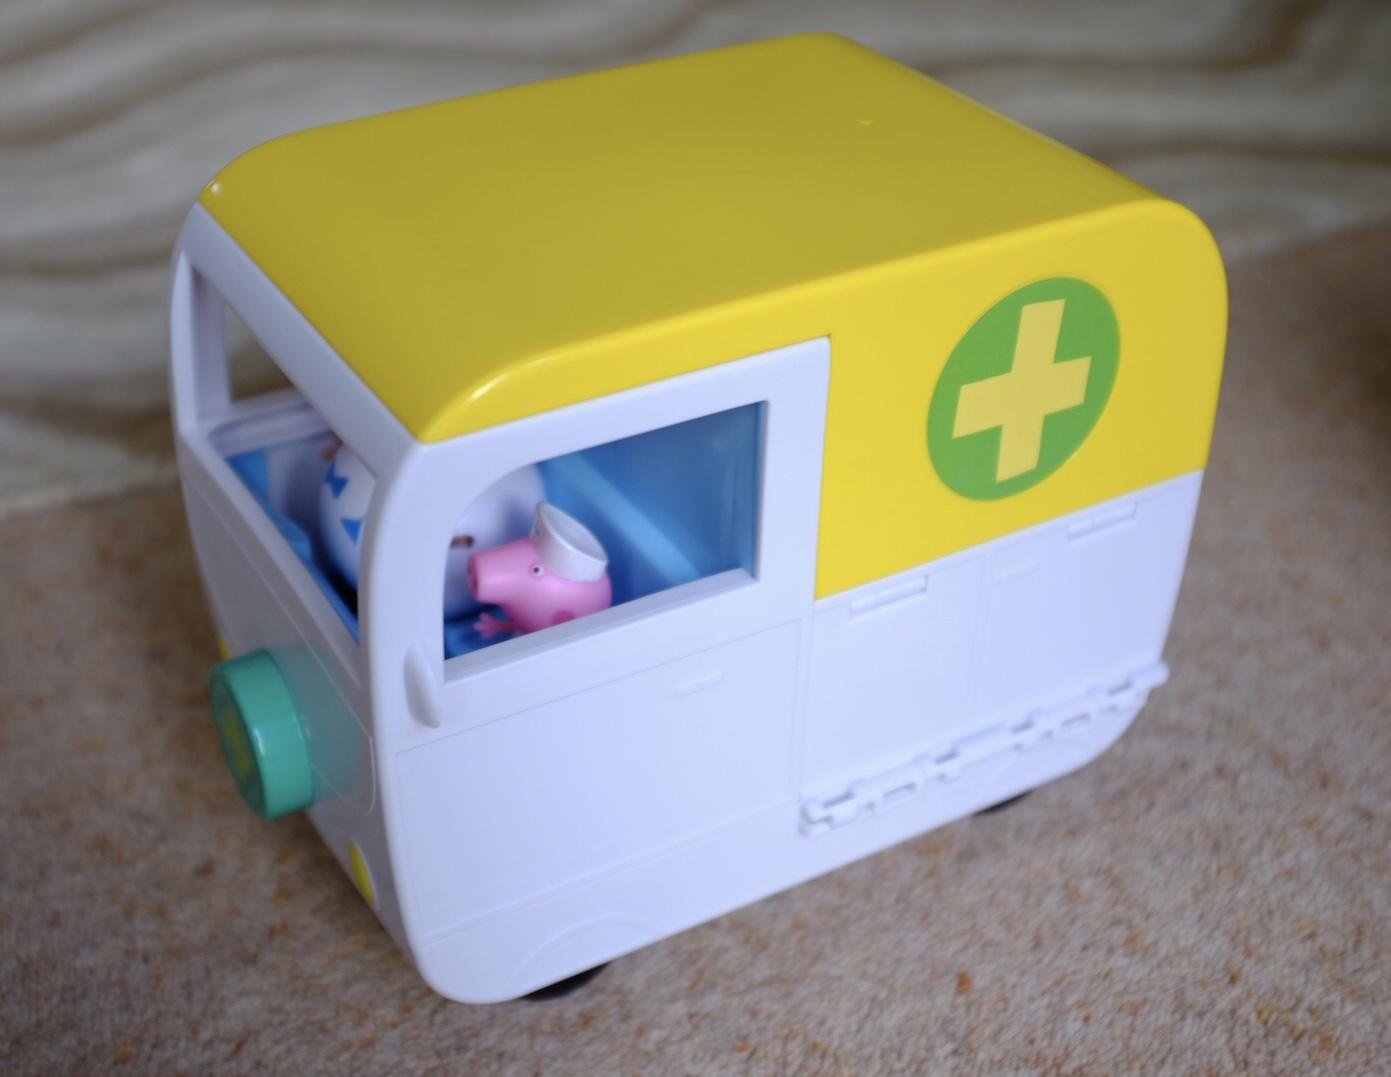 The ambulance in the Peppa Pig Mobile Medical Centre